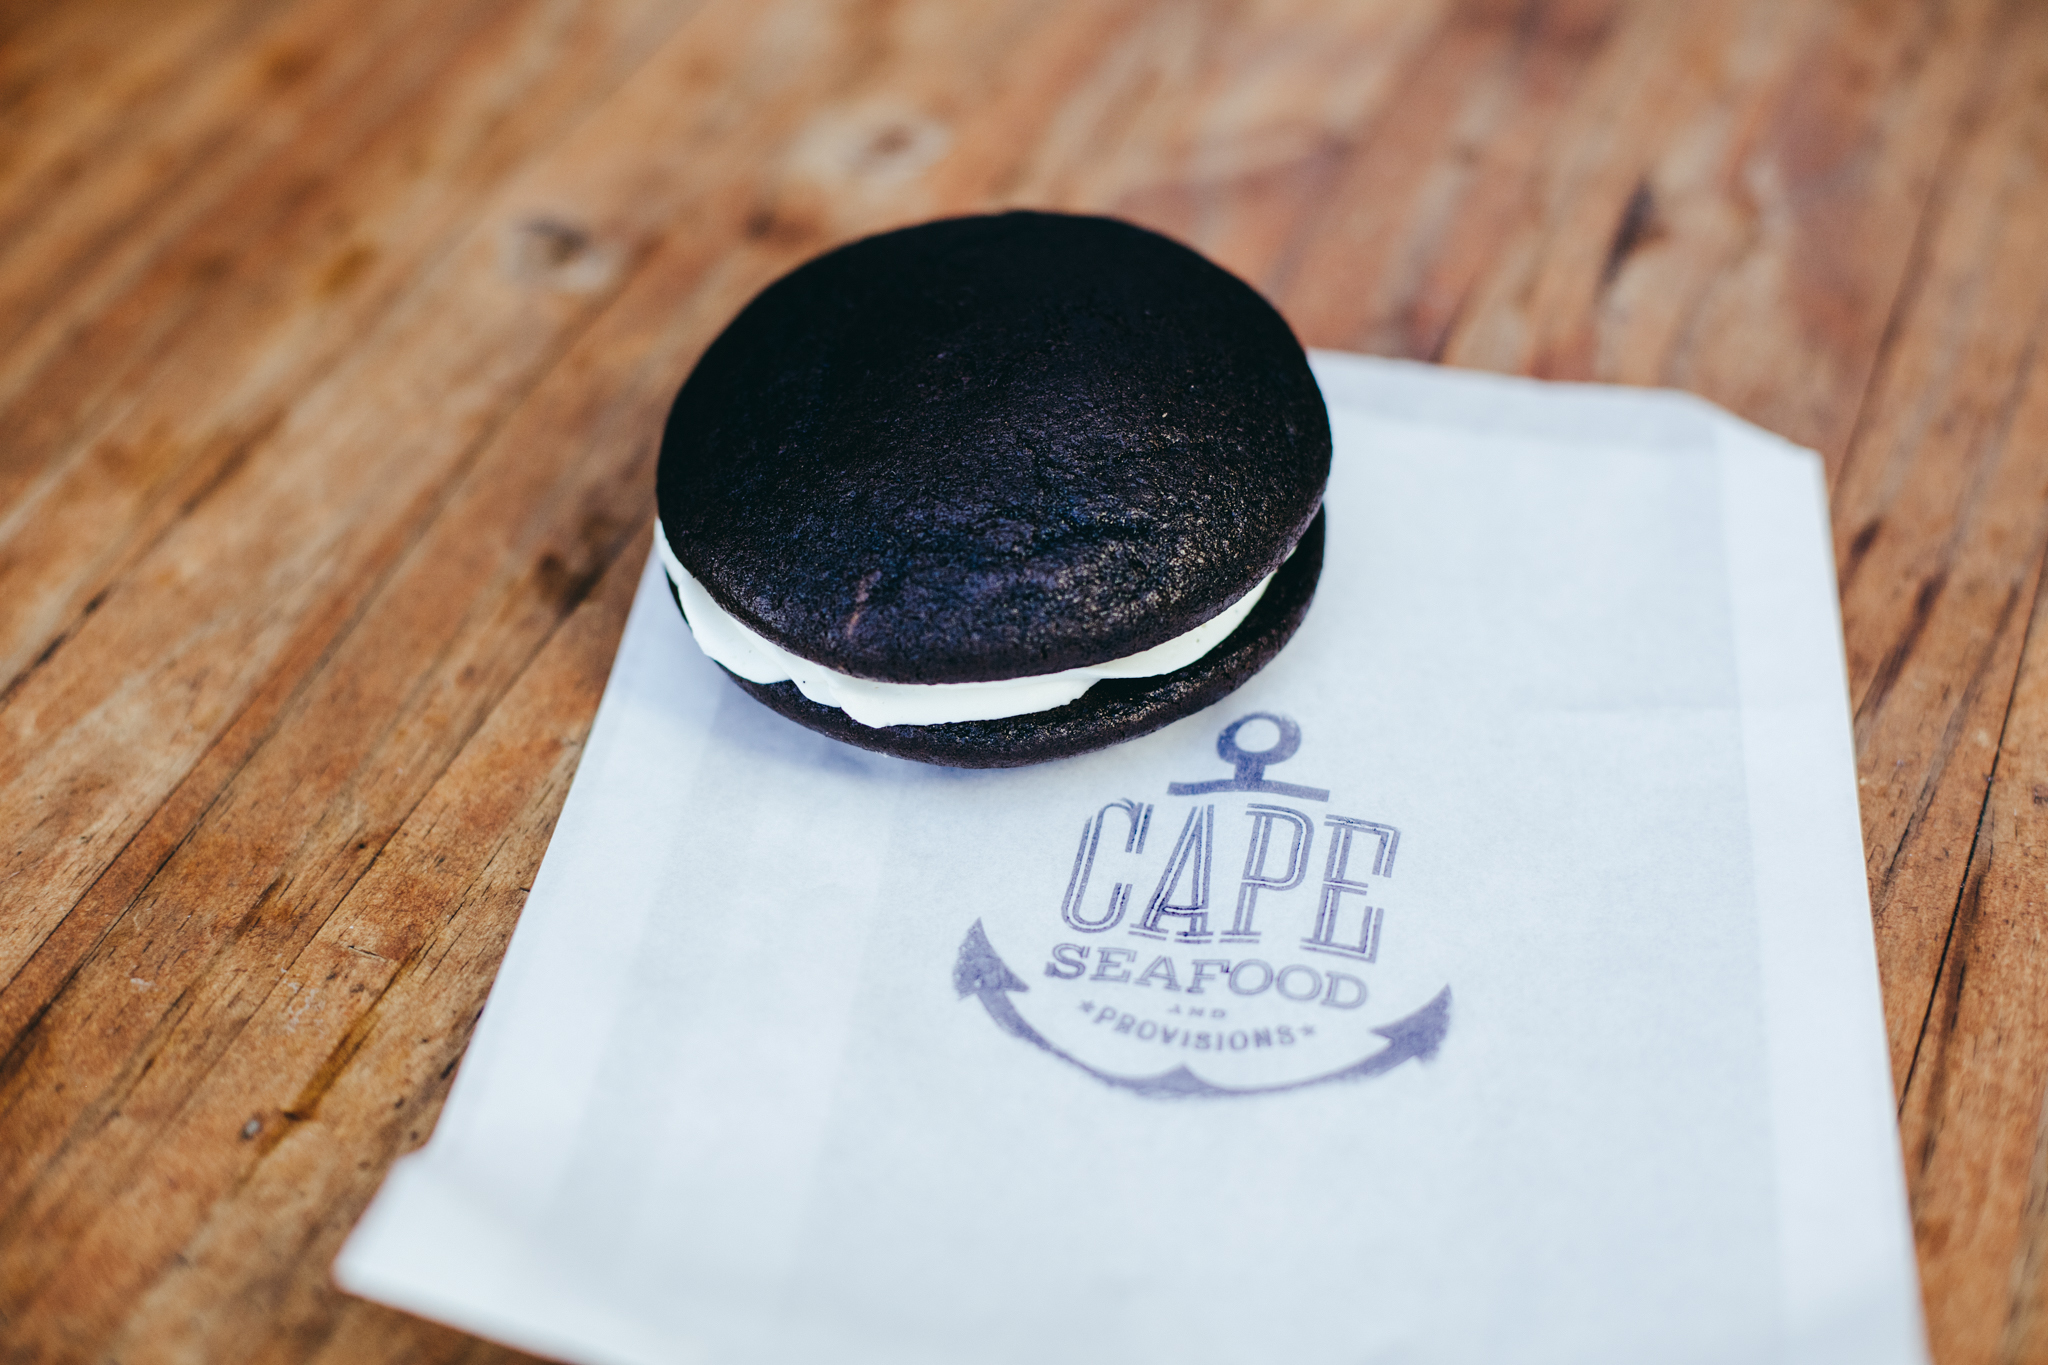 Whoopie Pie at Cape Seafood and Provisions